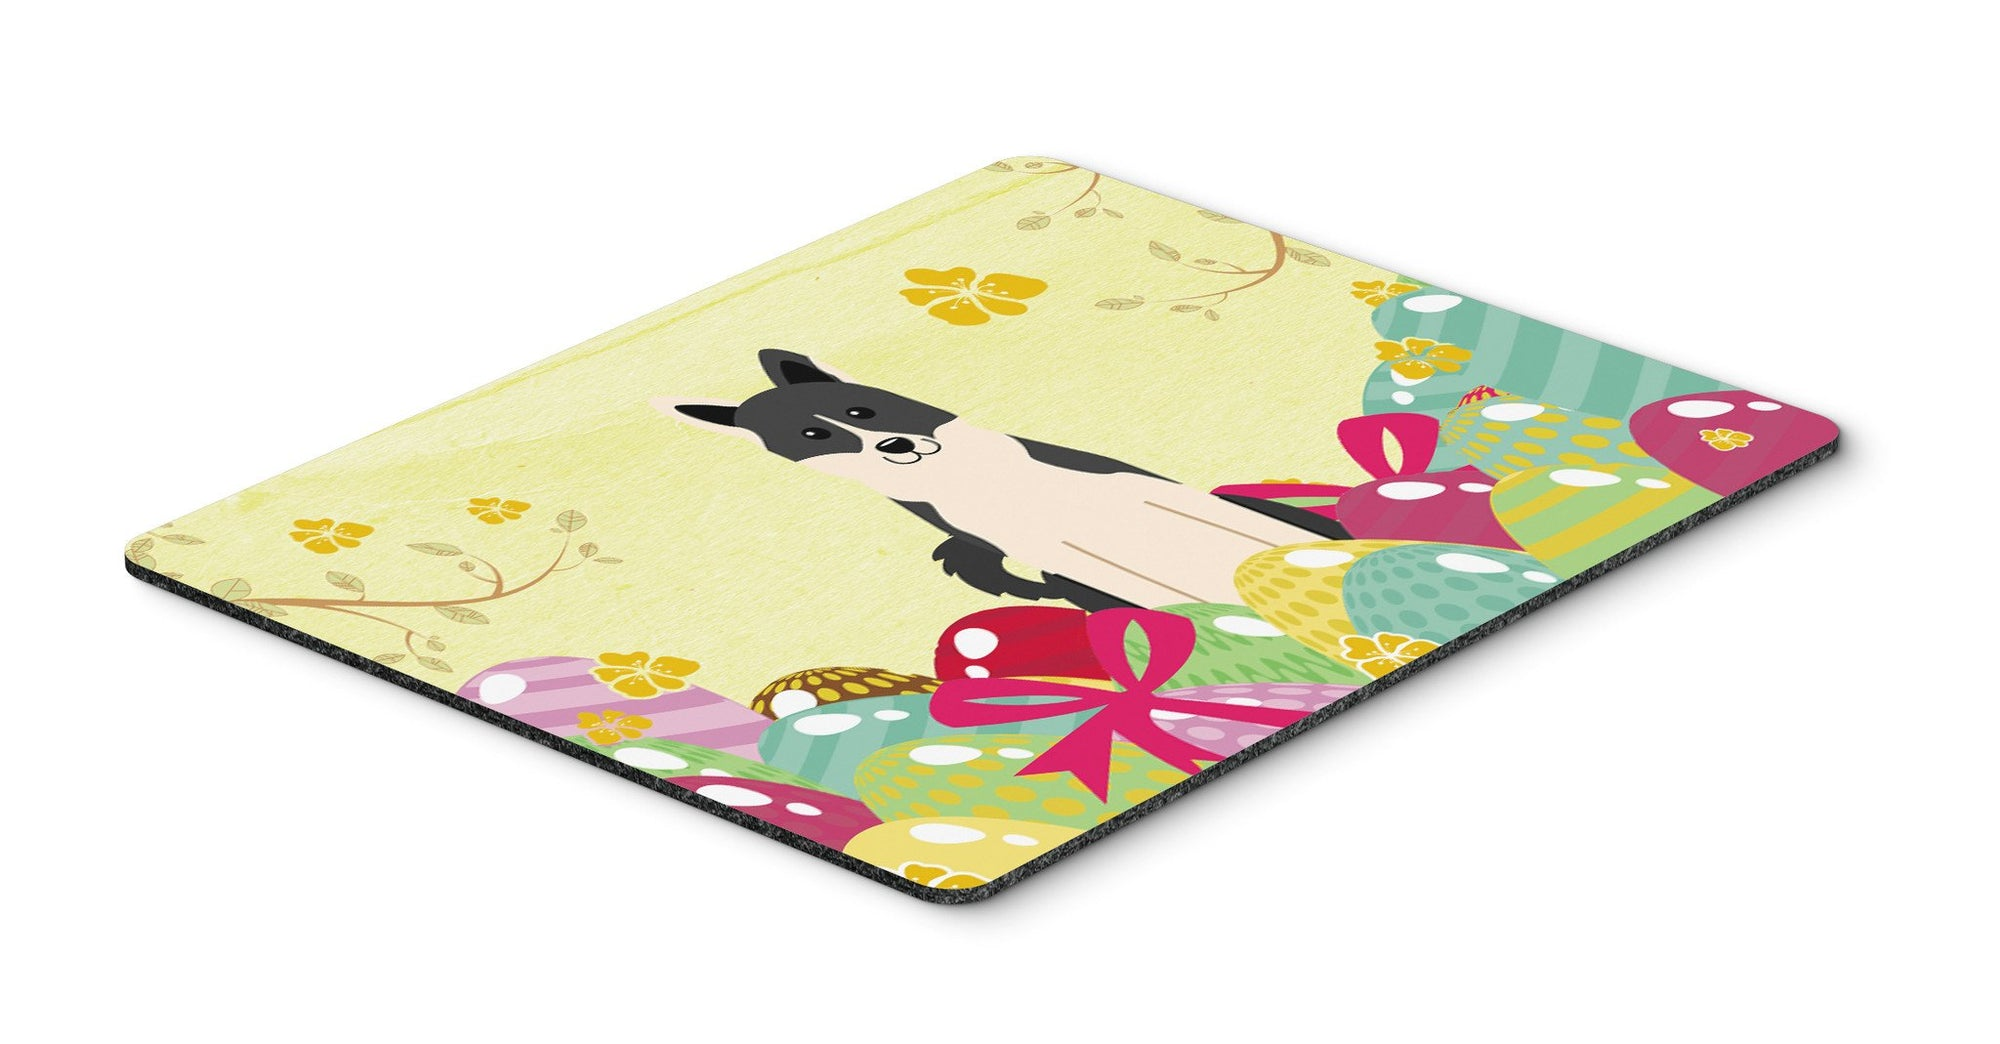 Easter Eggs Russo-European Laika Spitz Mouse Pad, Hot Pad or Trivet BB6029MP by Caroline's Treasures